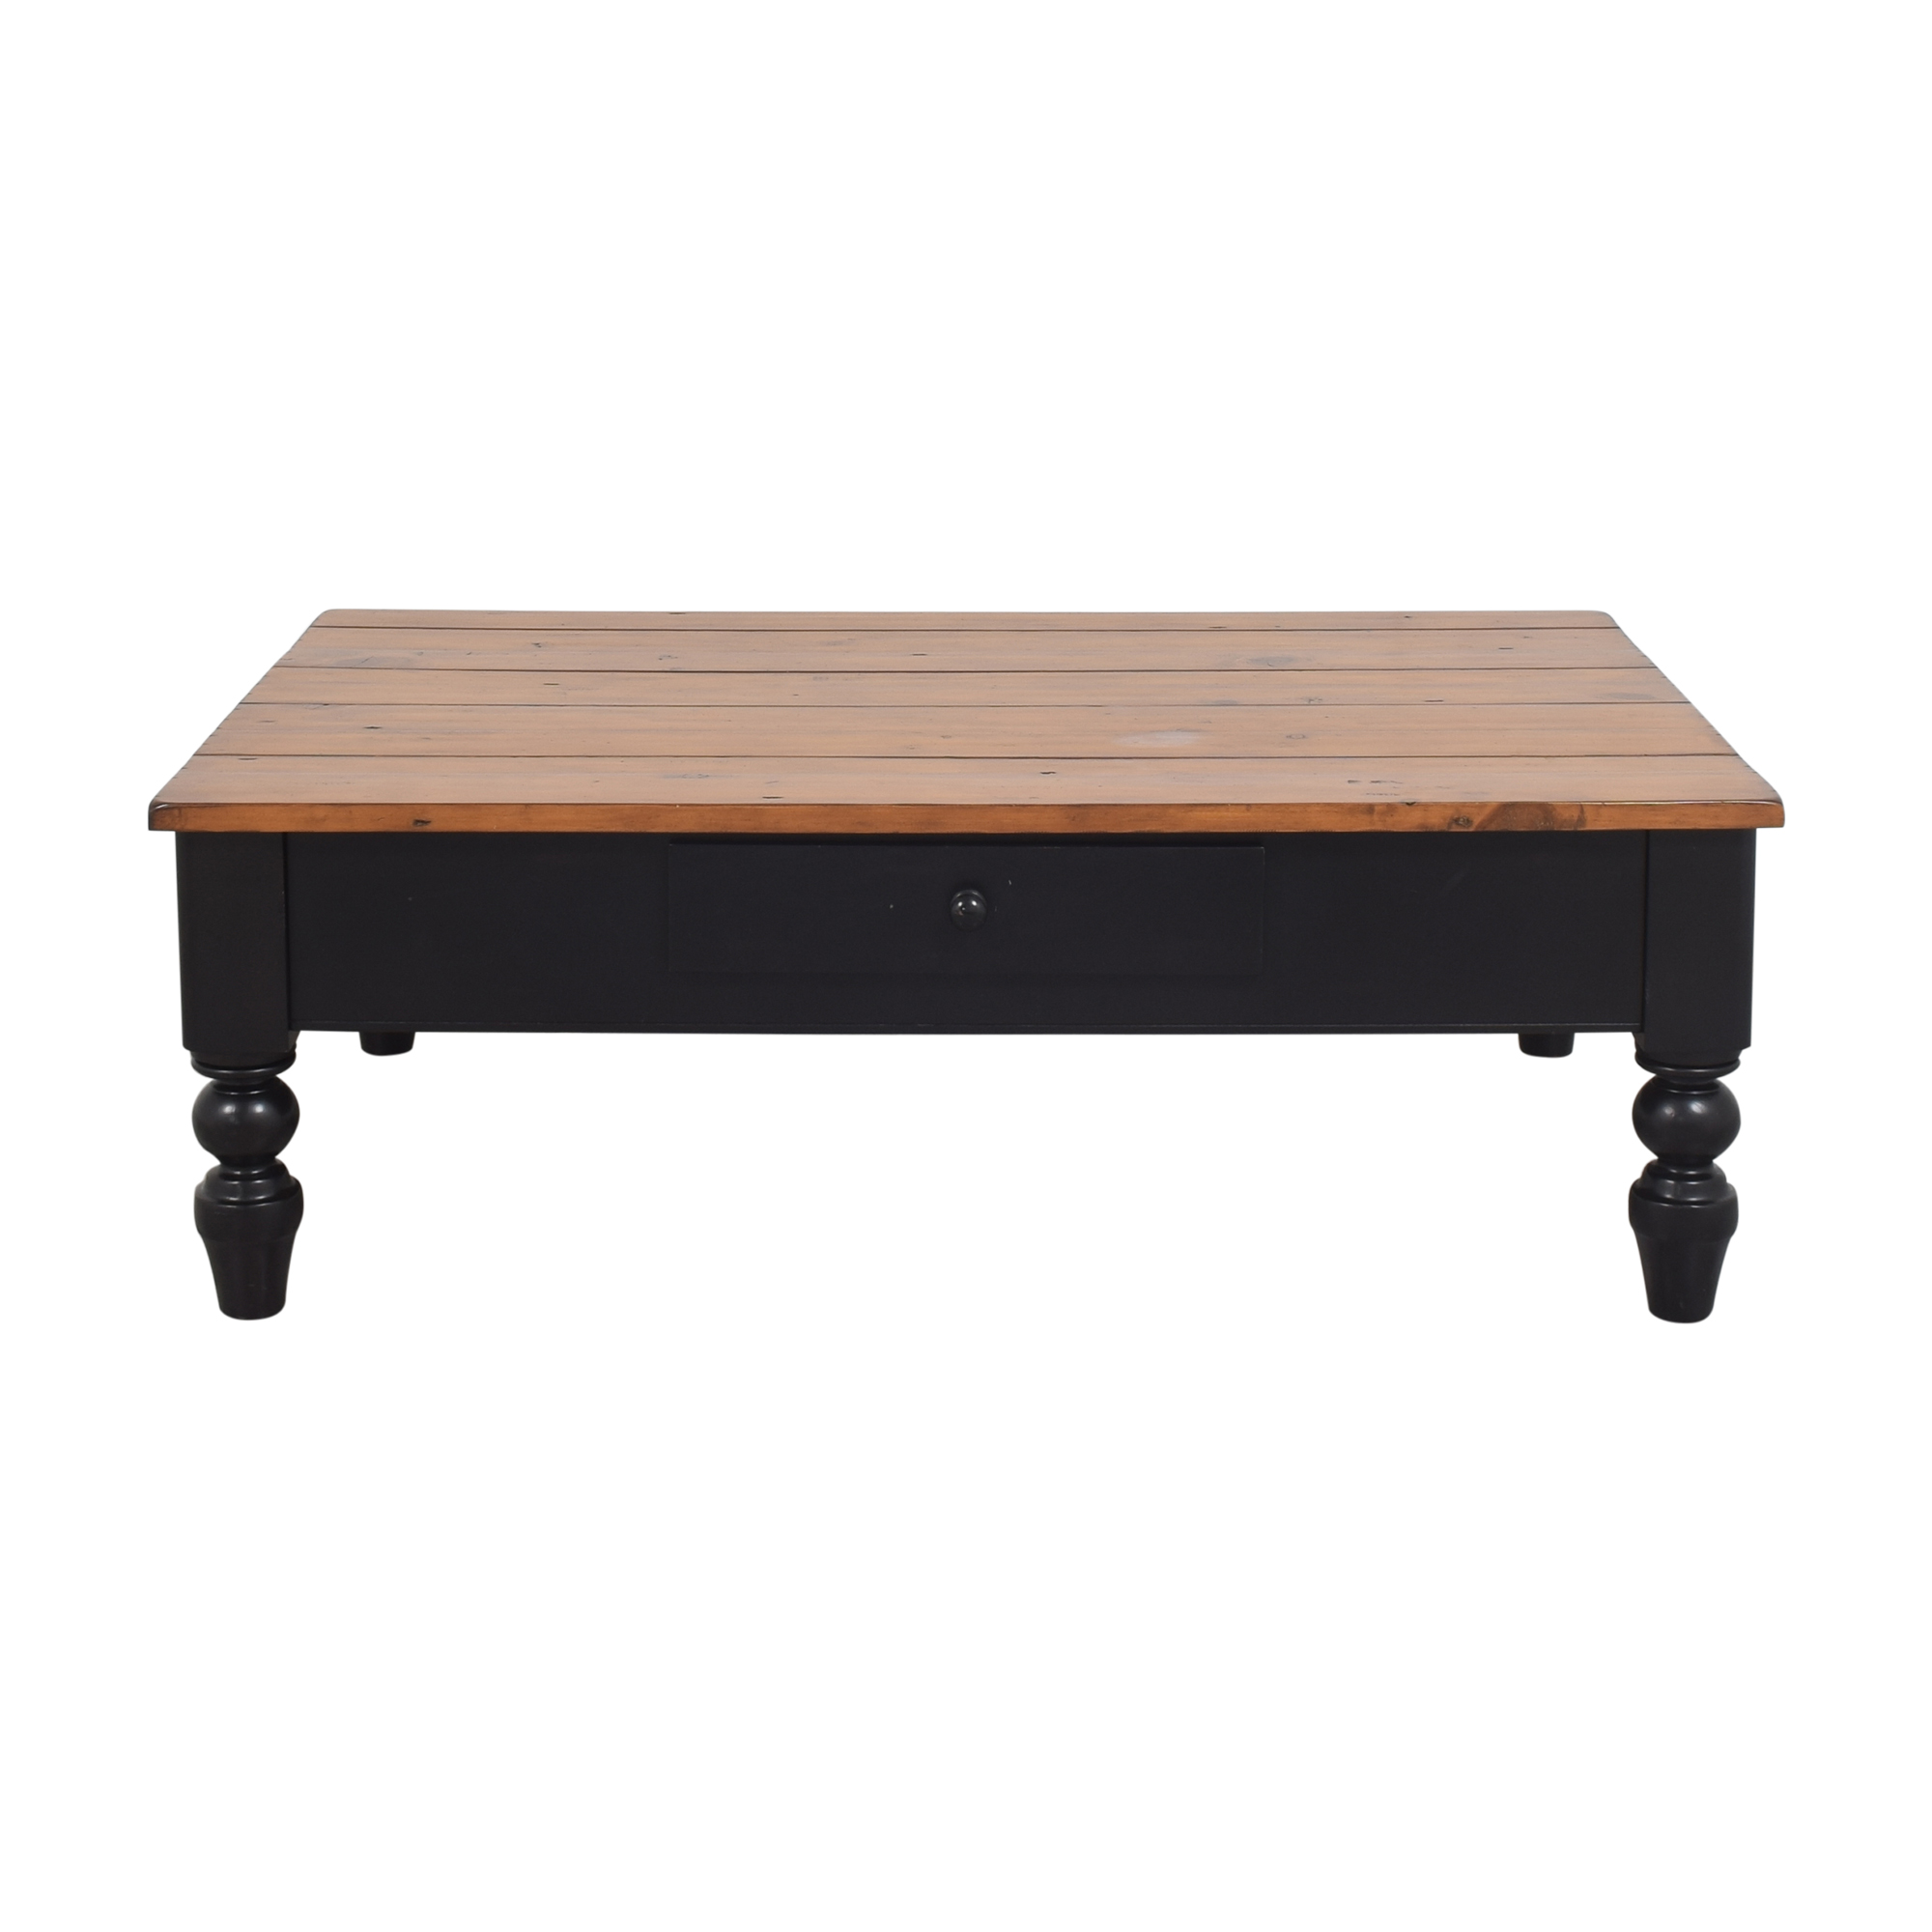 Pottery Barn Pottery Barn Coffee Table with Drawer